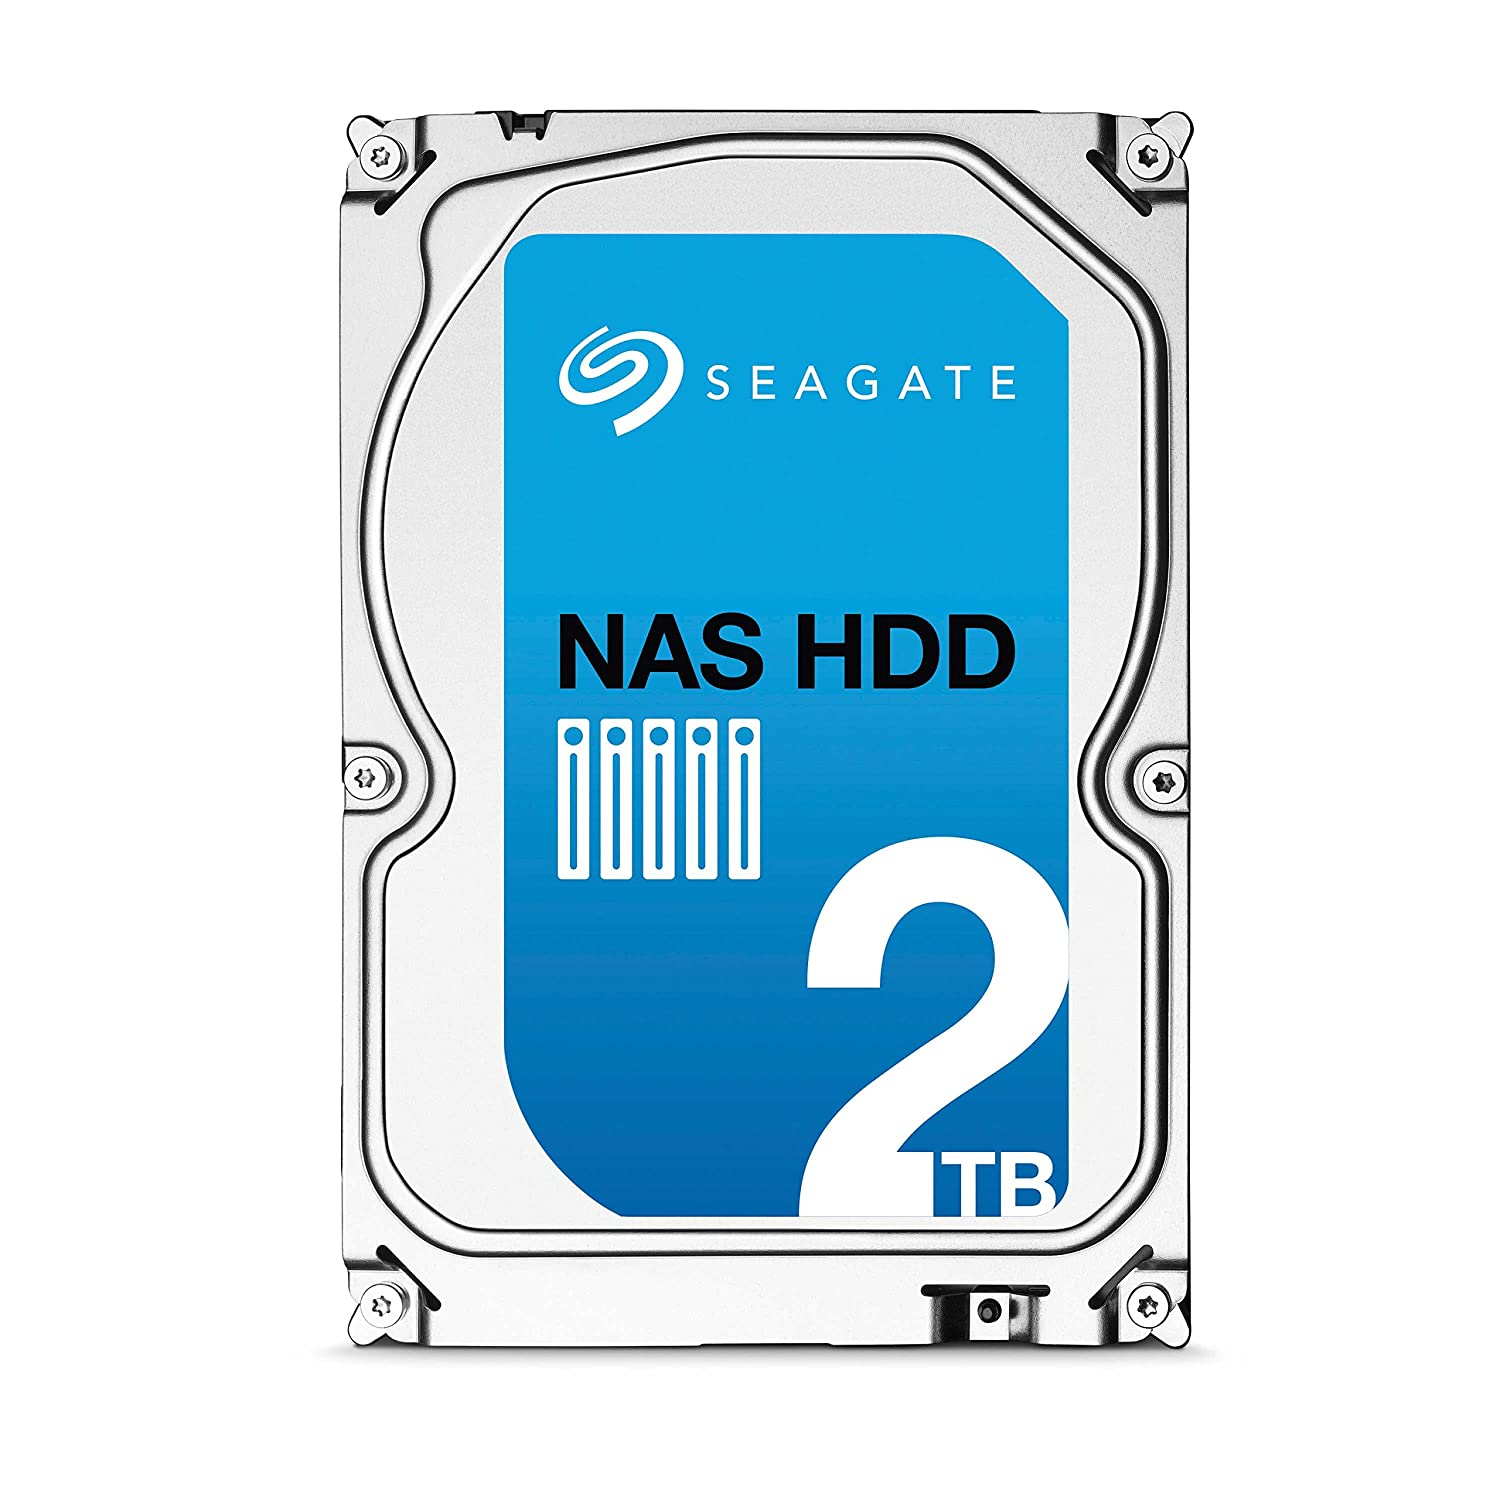 Seagate 2TB NAS HDD SATA 6Gb/s 64MB Cache 3.5-Inch Internal Bare Drive (ST2000VN000)